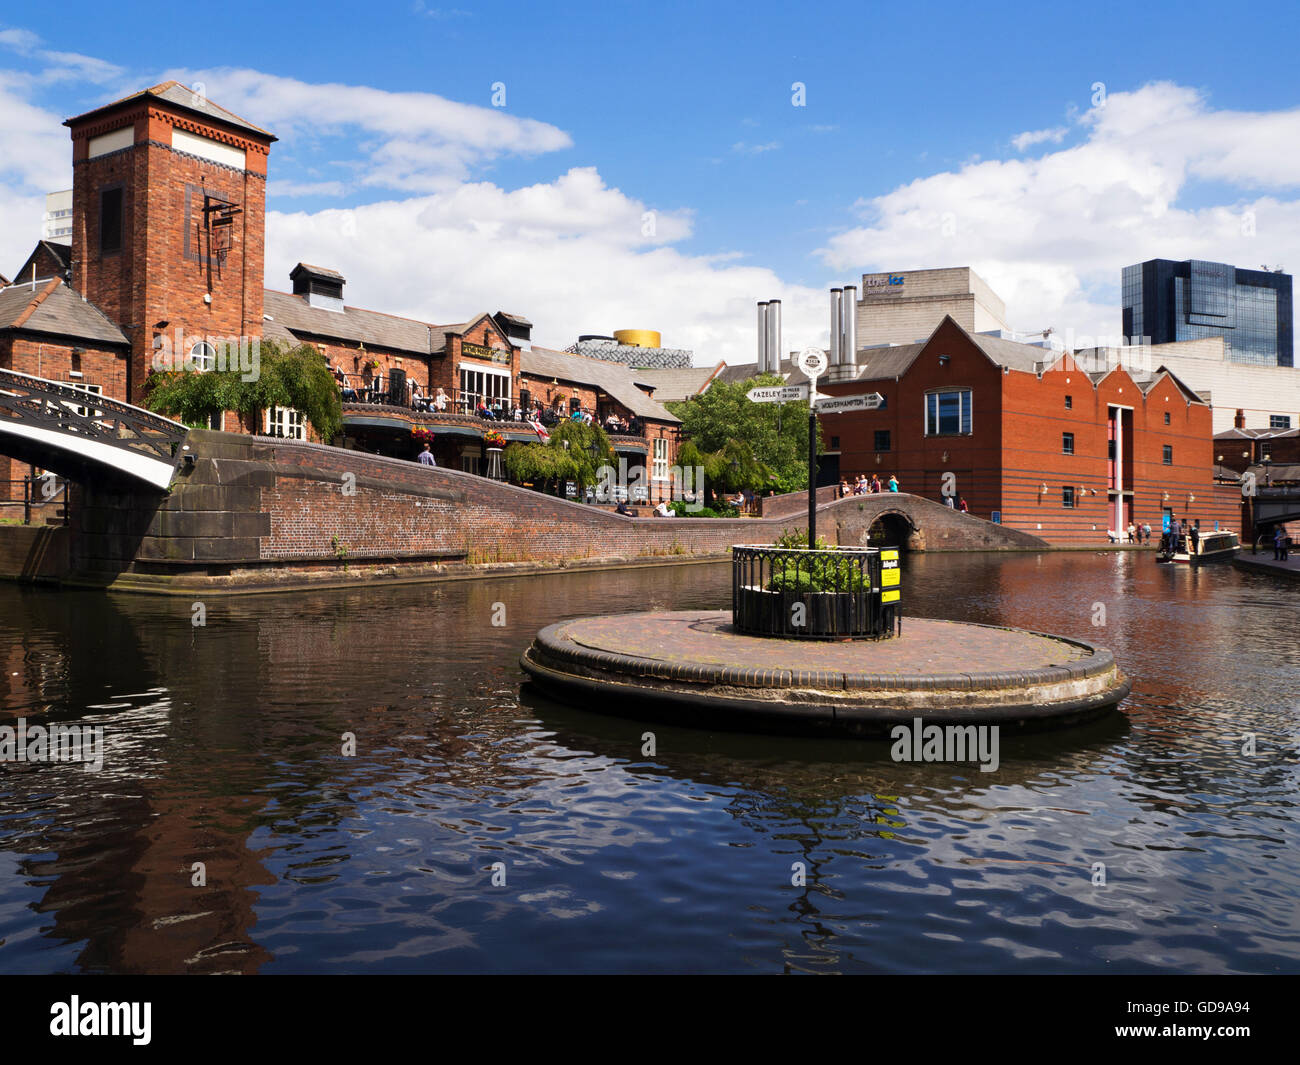 Busy Pub at Old Turn Junction on the Birmingham Canal Birmingham West Midlands England - Stock Image